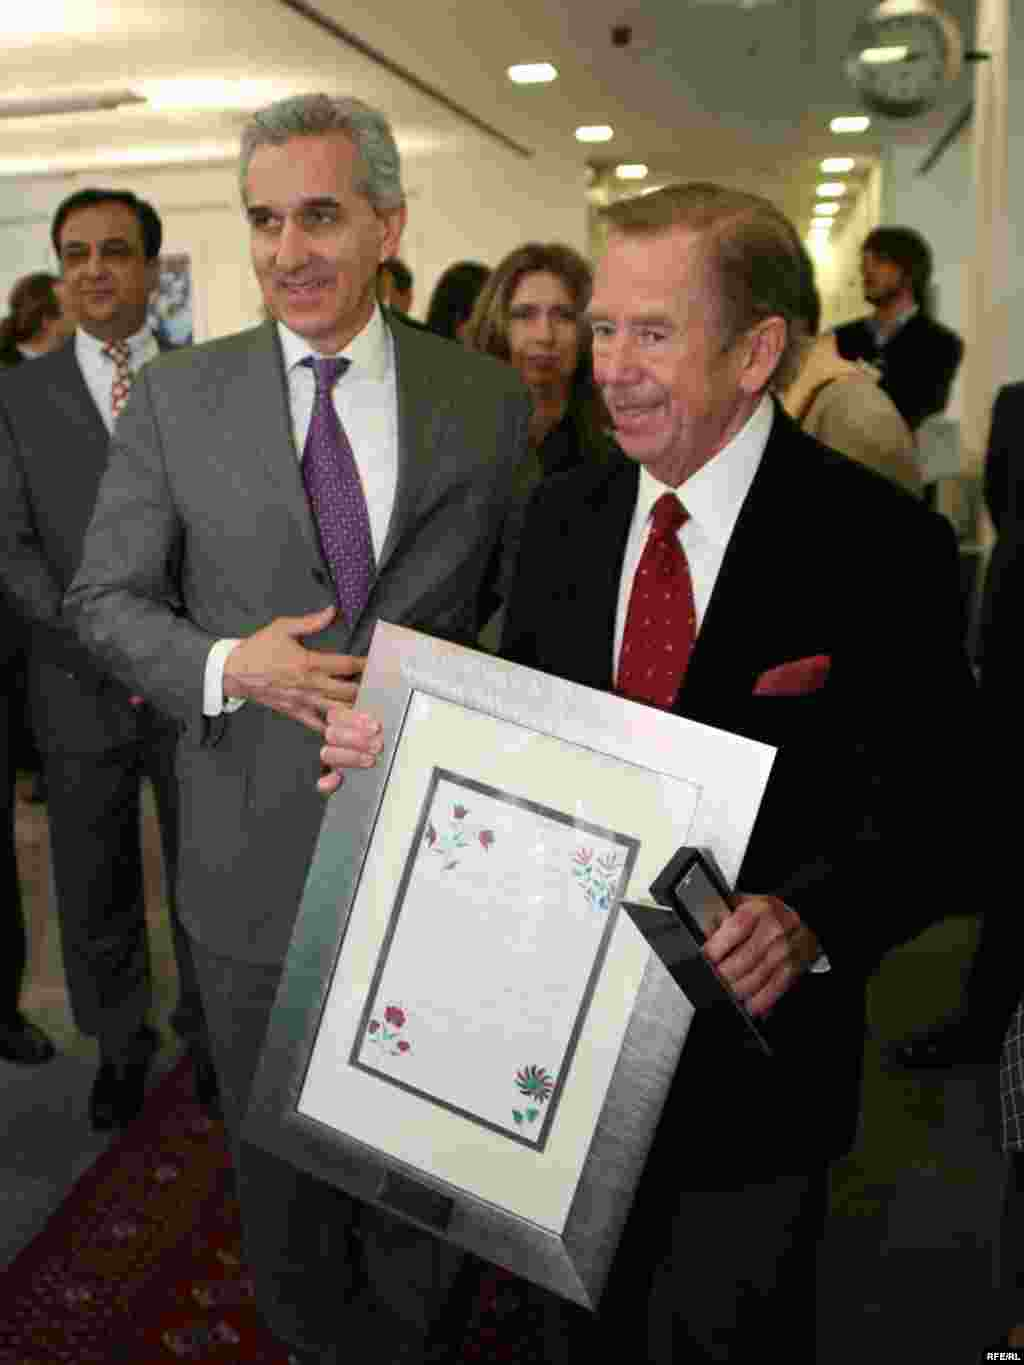 President Havel was presented with a letter from a listener in Afghanistan, one of hundreds received on a regular basis.